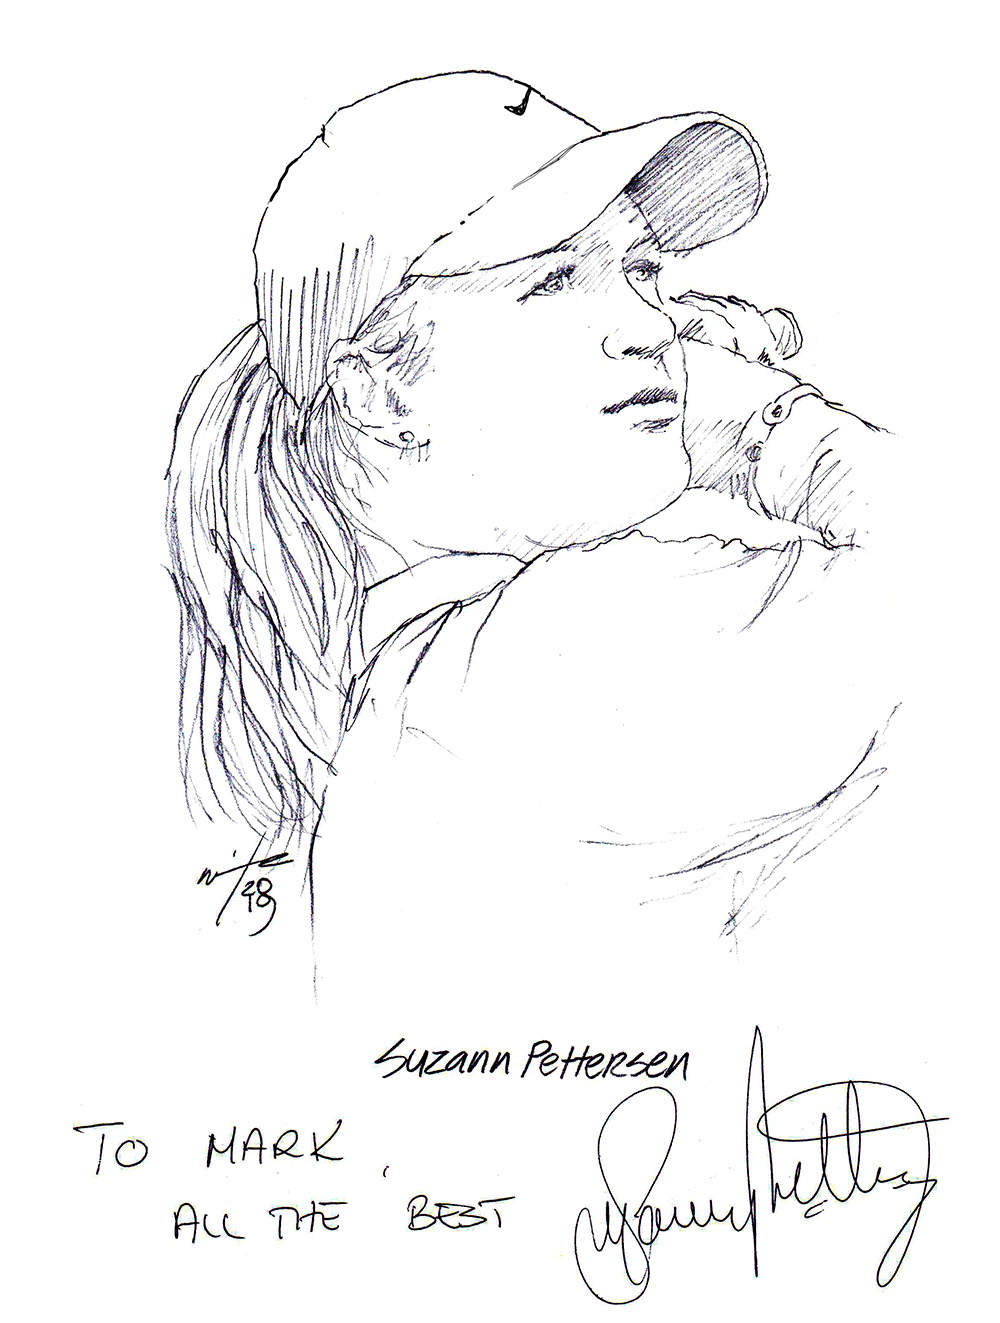 Autographed drawing of golfer Suzann Pettersen